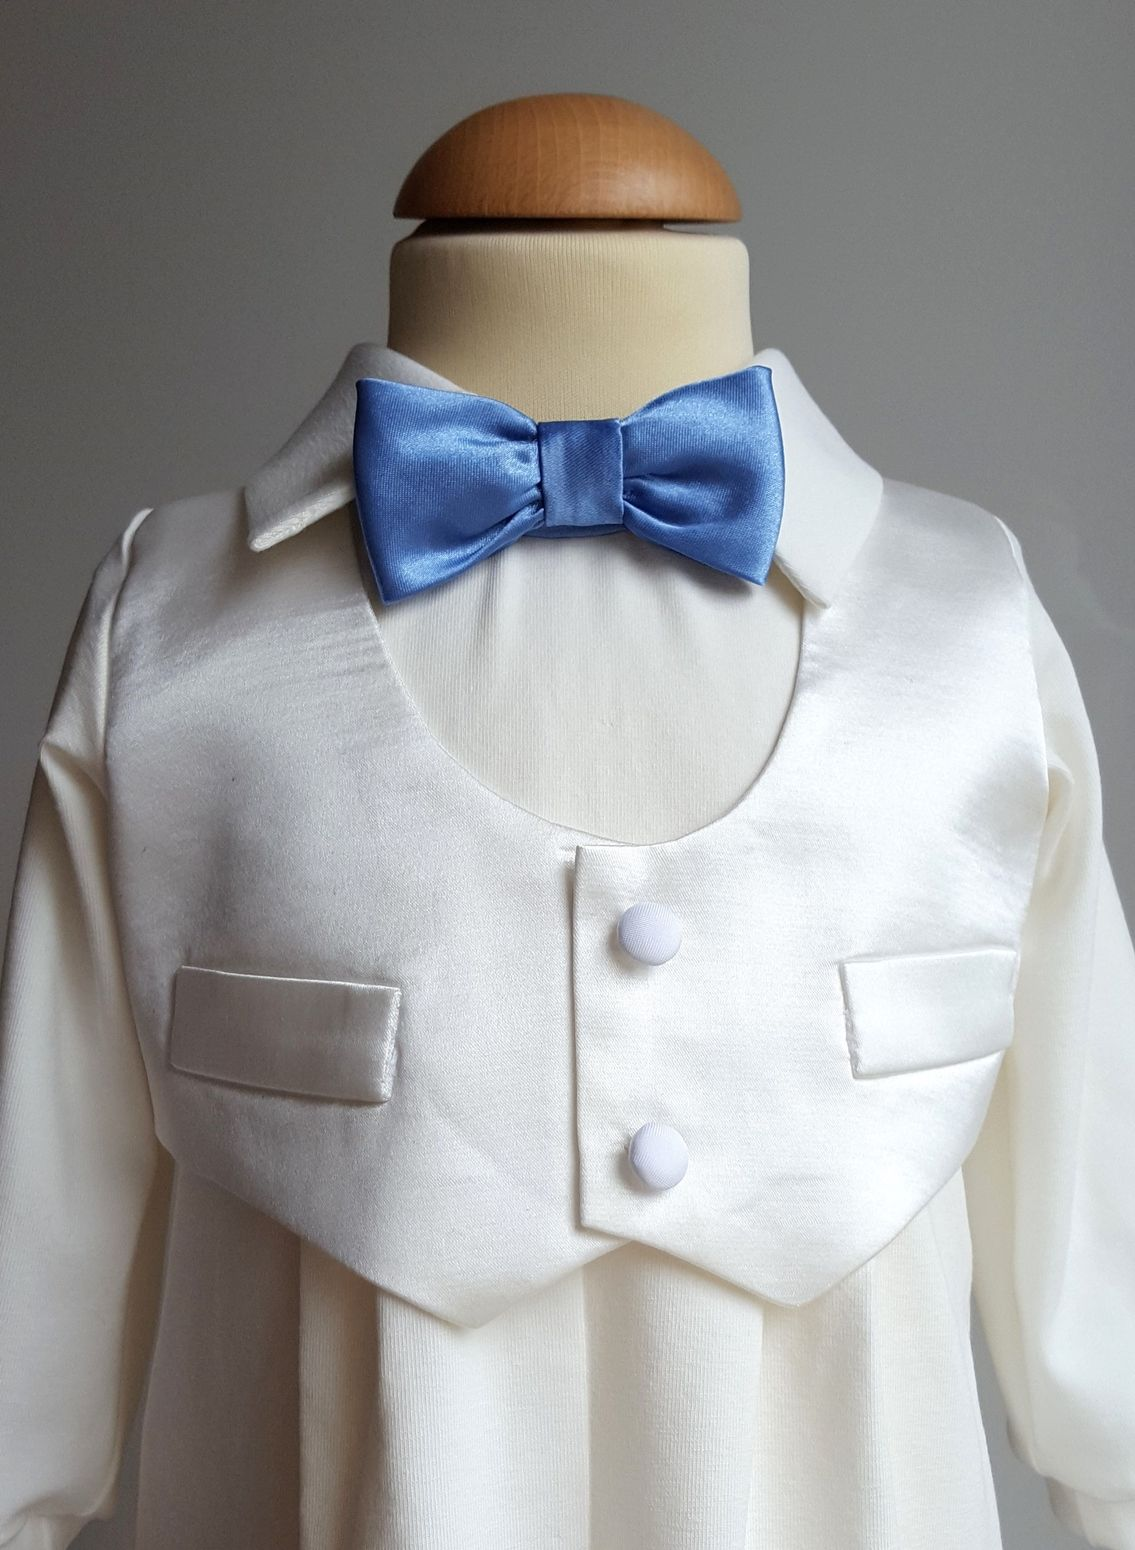 http://www.graceofsweden.com/en/special-occasion-outfits/baby-suits-for-special-occasions/baptism-suit